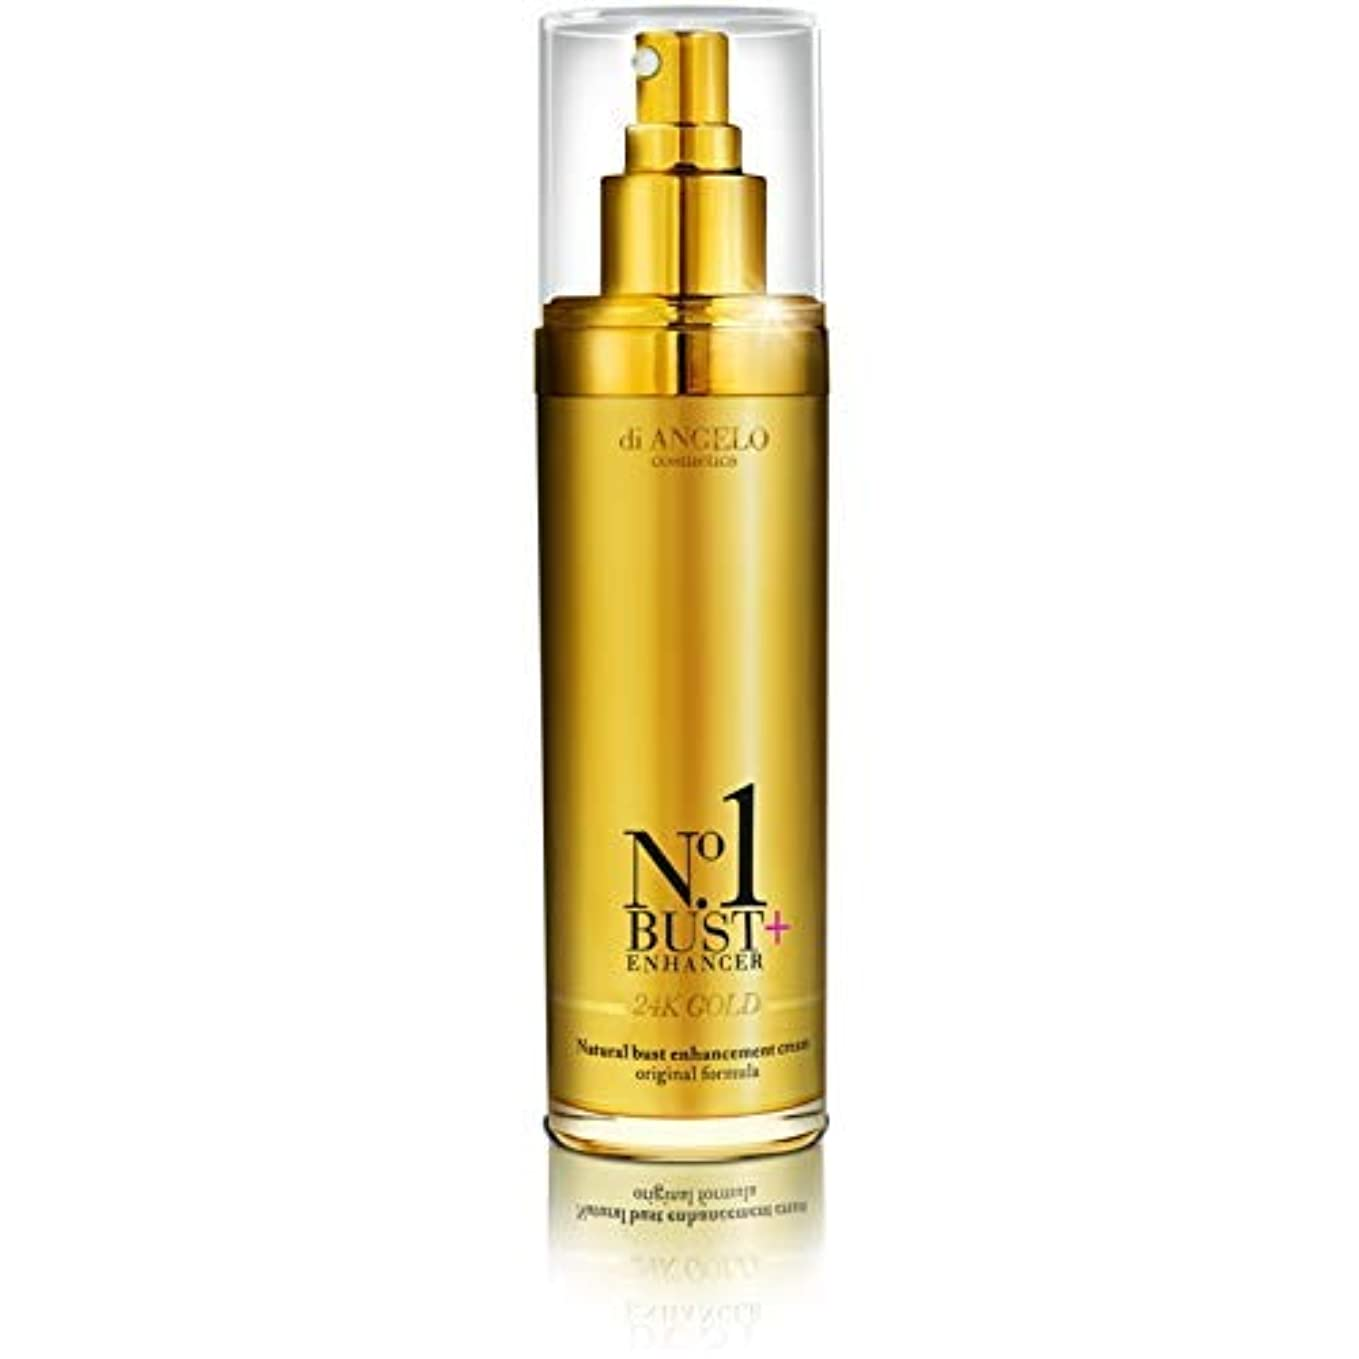 Di Angelo No1 24K Gold Bust Enhancer for Decollete 120ml Made in Italy / デアンジェロNo1 24Kゴールドバストエンハンサーデコルテ120mlイタリア製